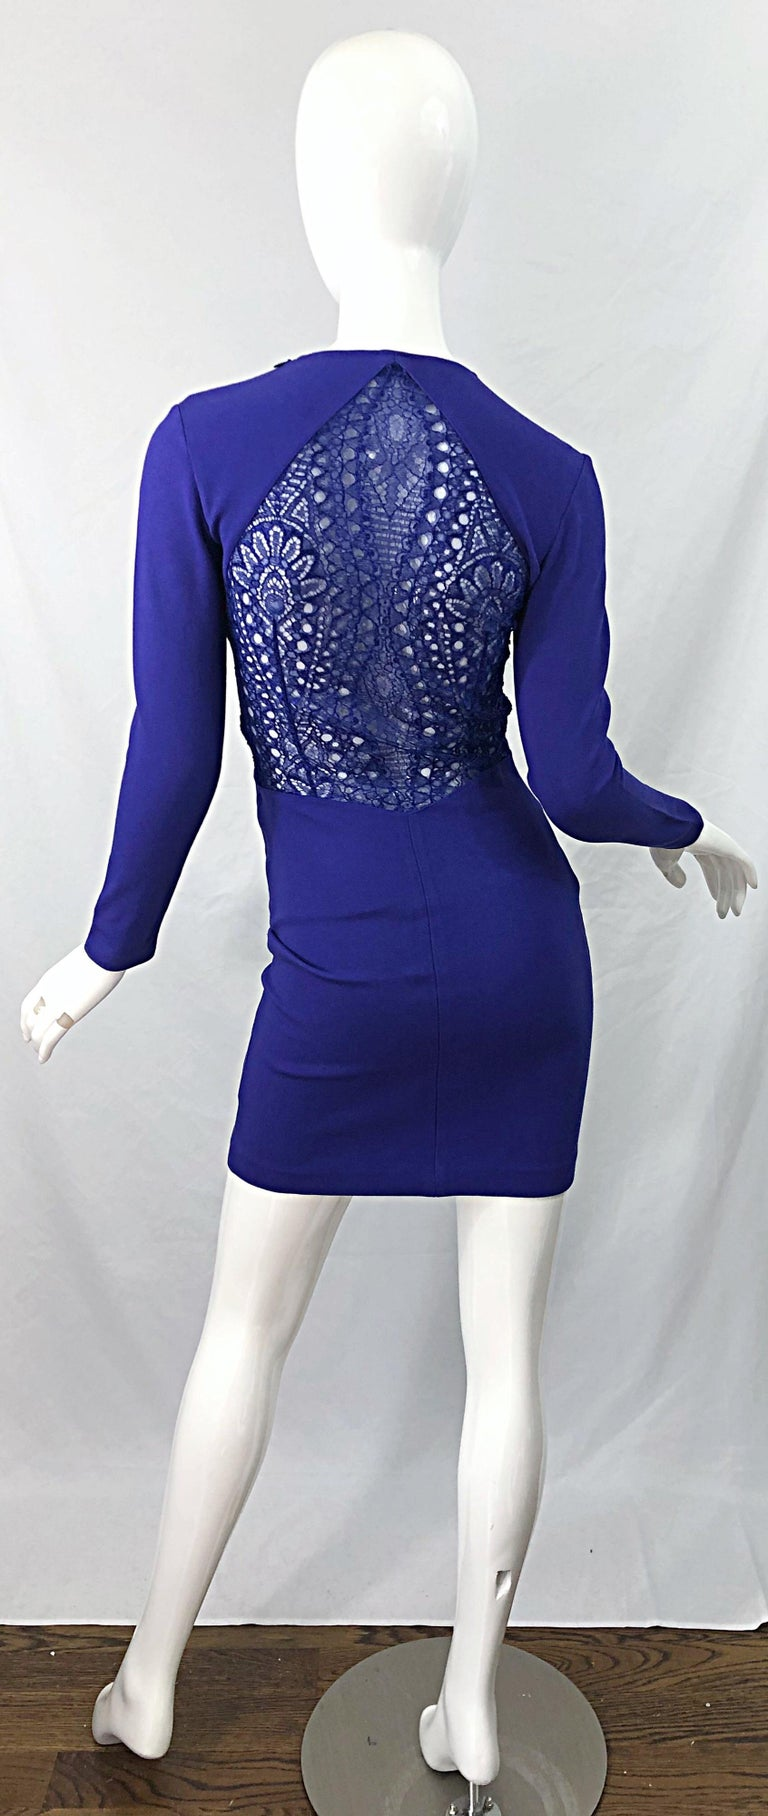 Emilio Pucci Fall 2012 Purple Rayon Lace Cut Out Long Sleeve Bodycon Dress For Sale 4